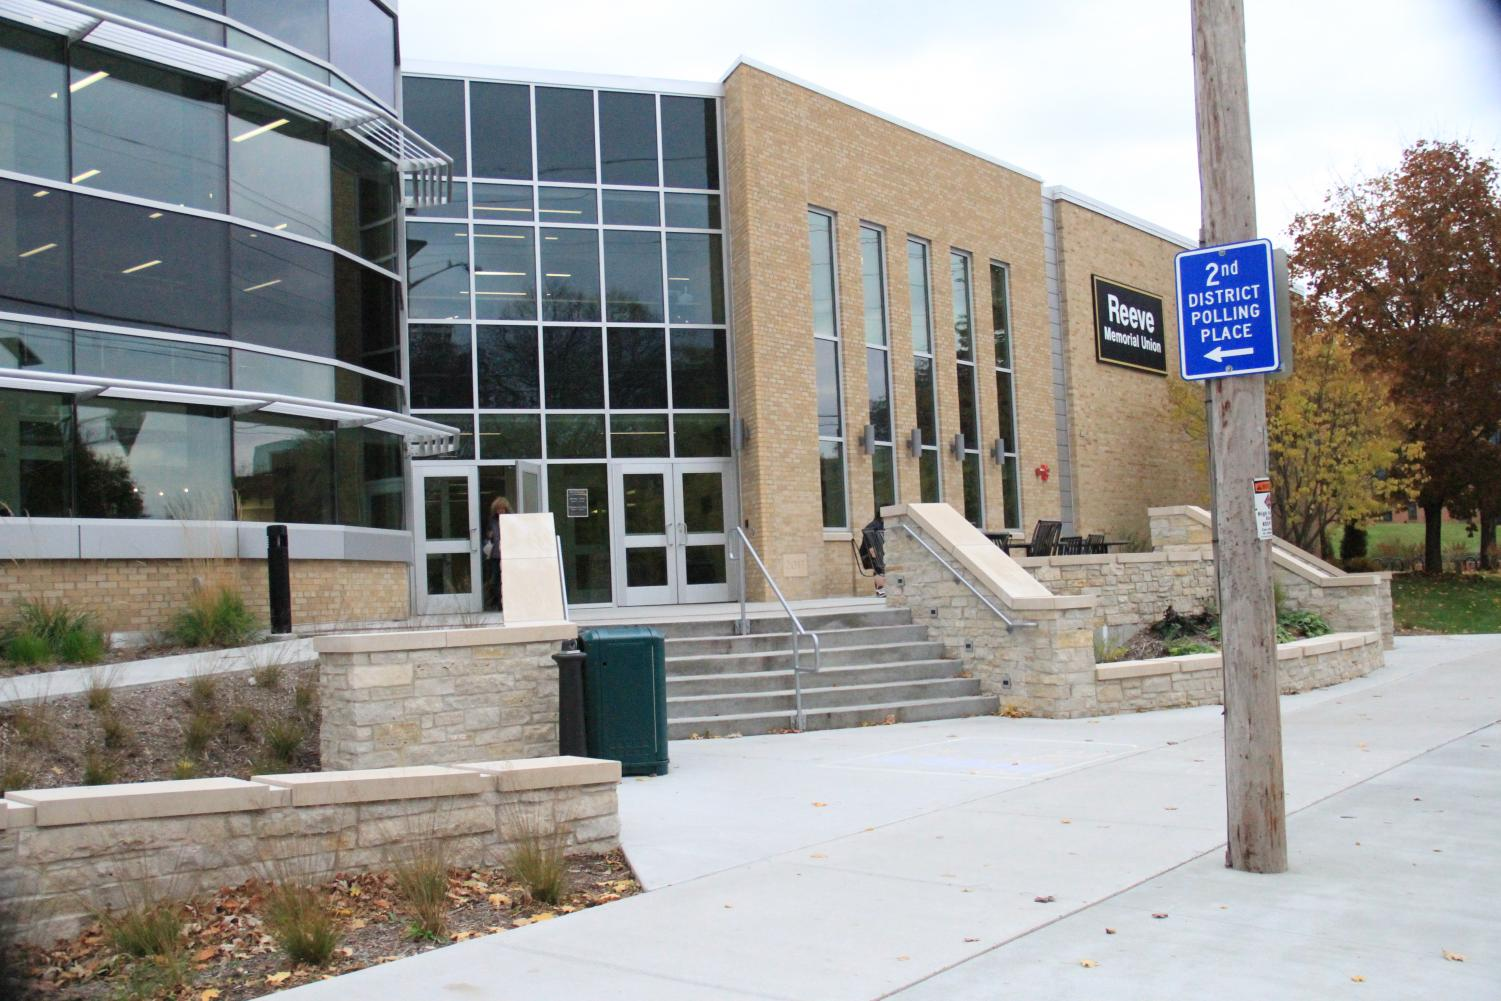 Reeve Memorial Union will be a voting location for students on Nov. 6.